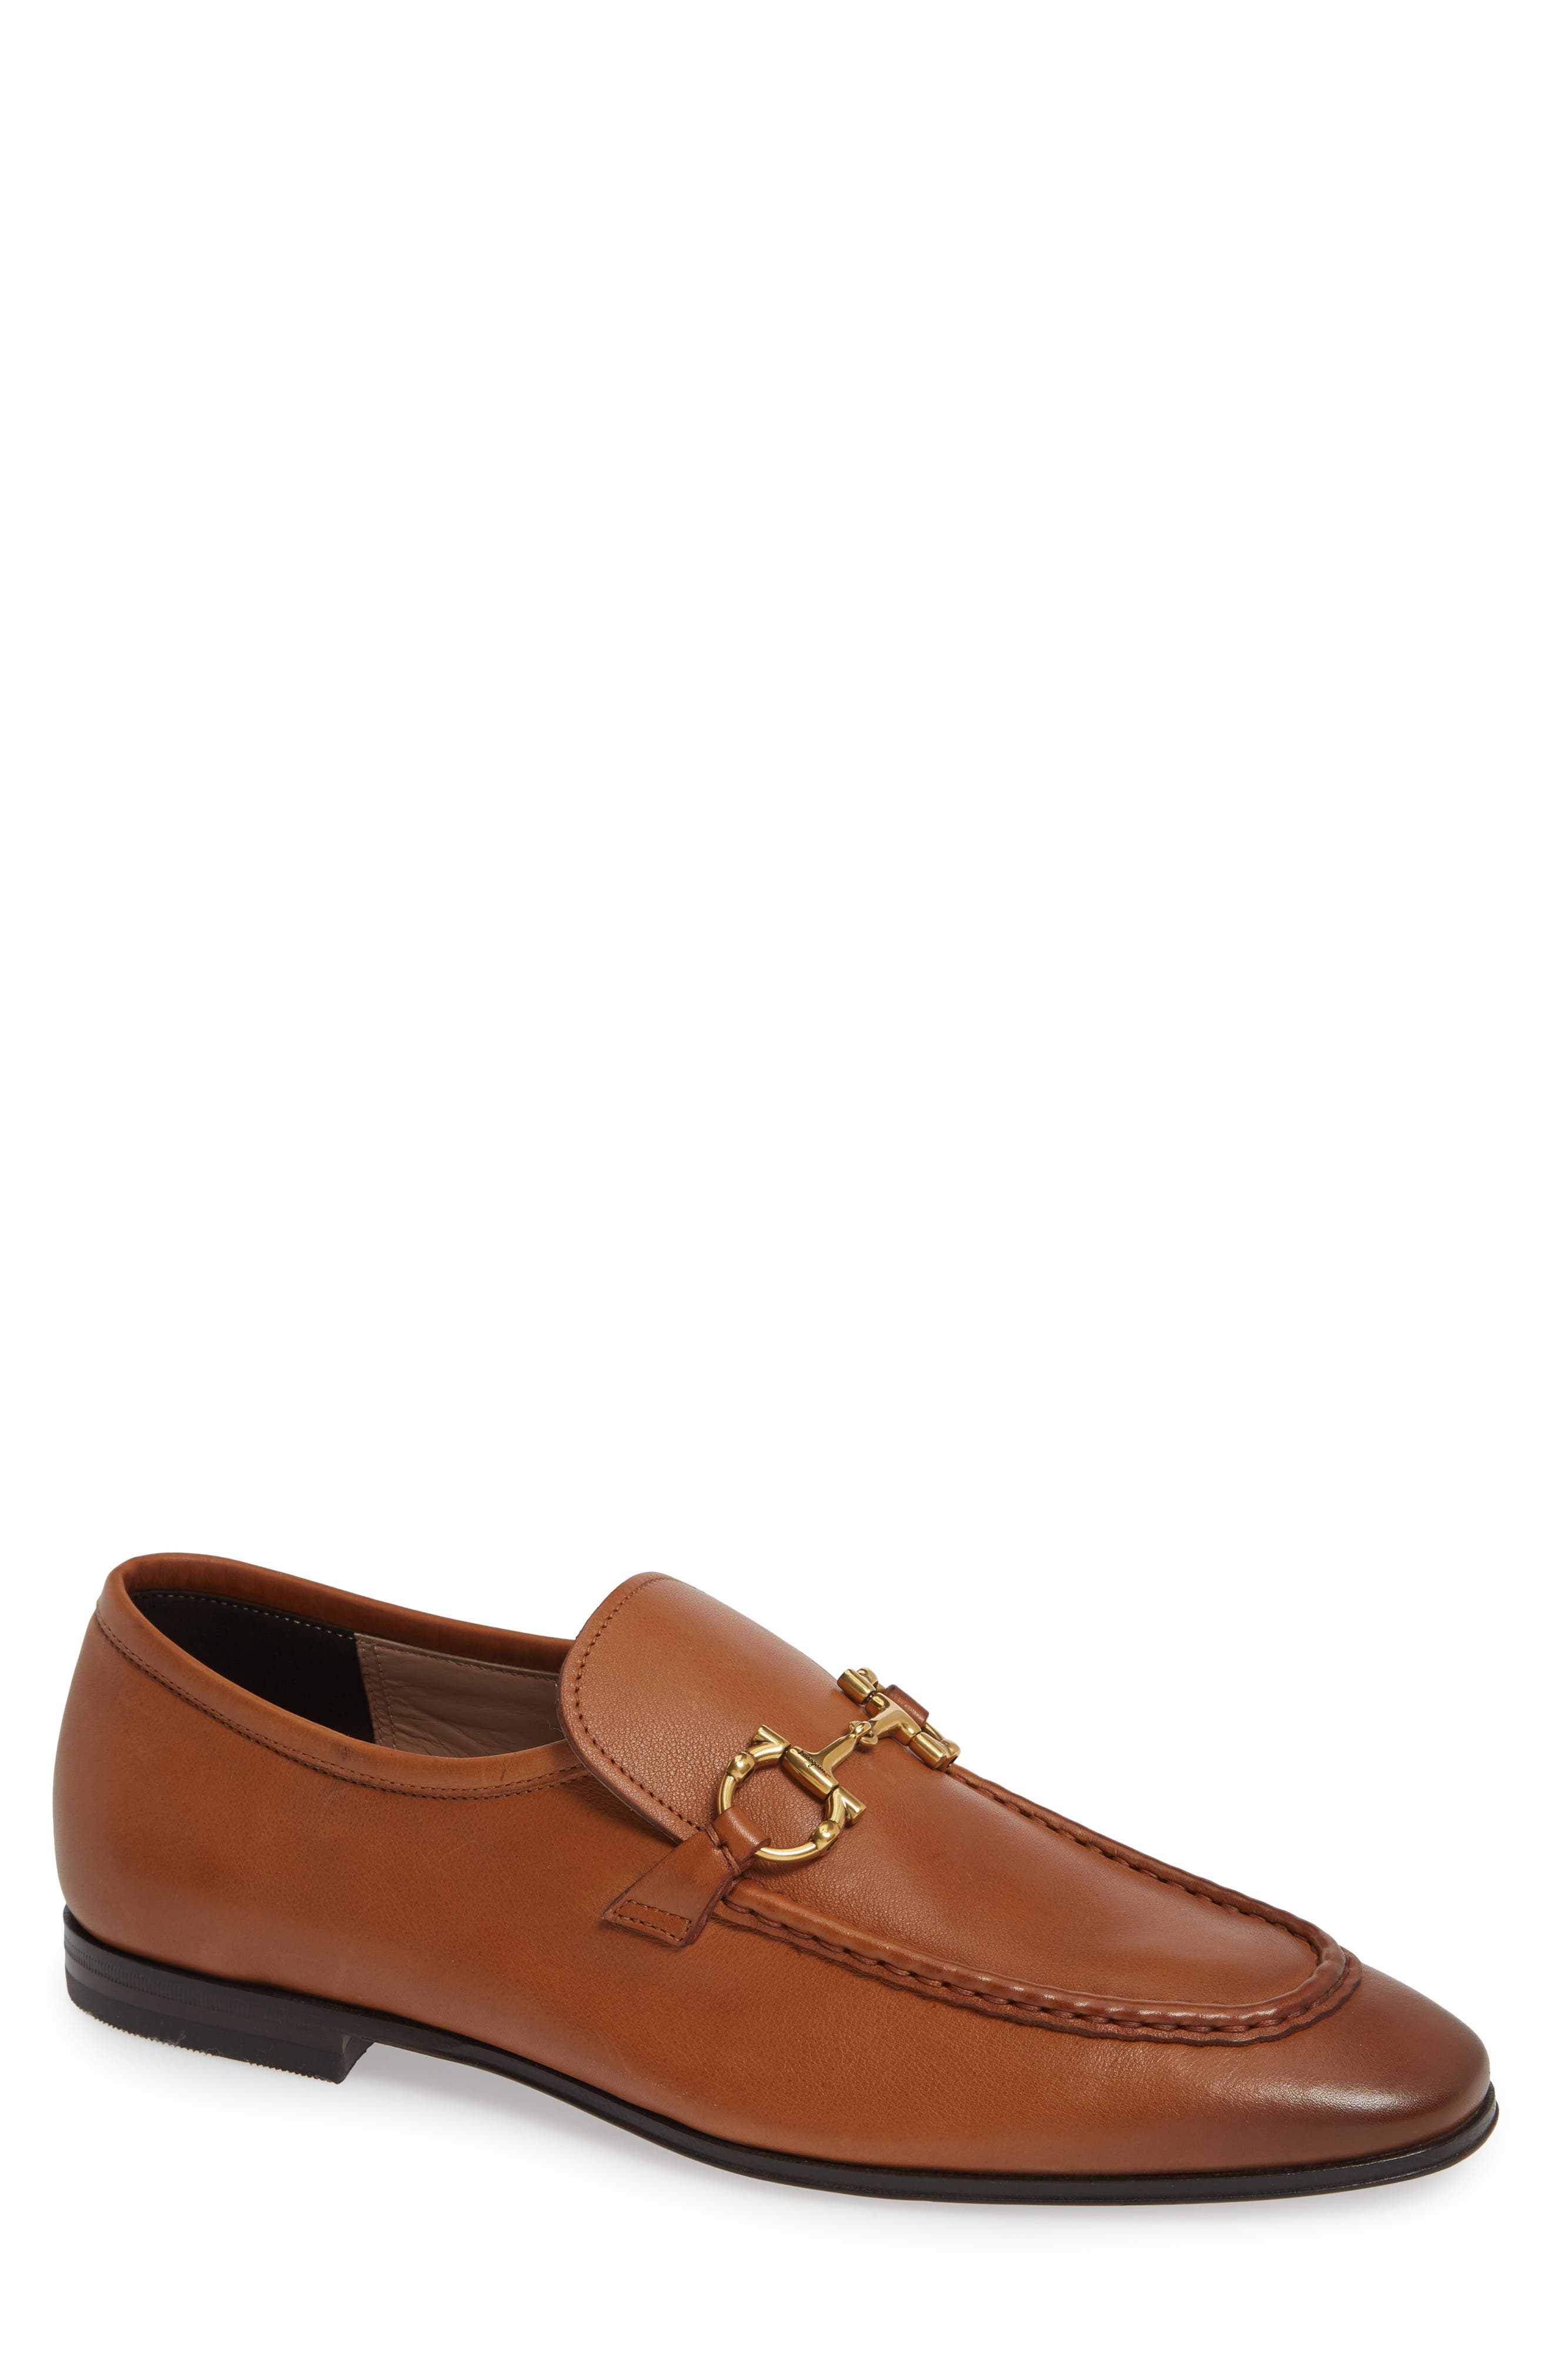 Anderson Bit Loafer,                             Main thumbnail 1, color,                             CAMEL